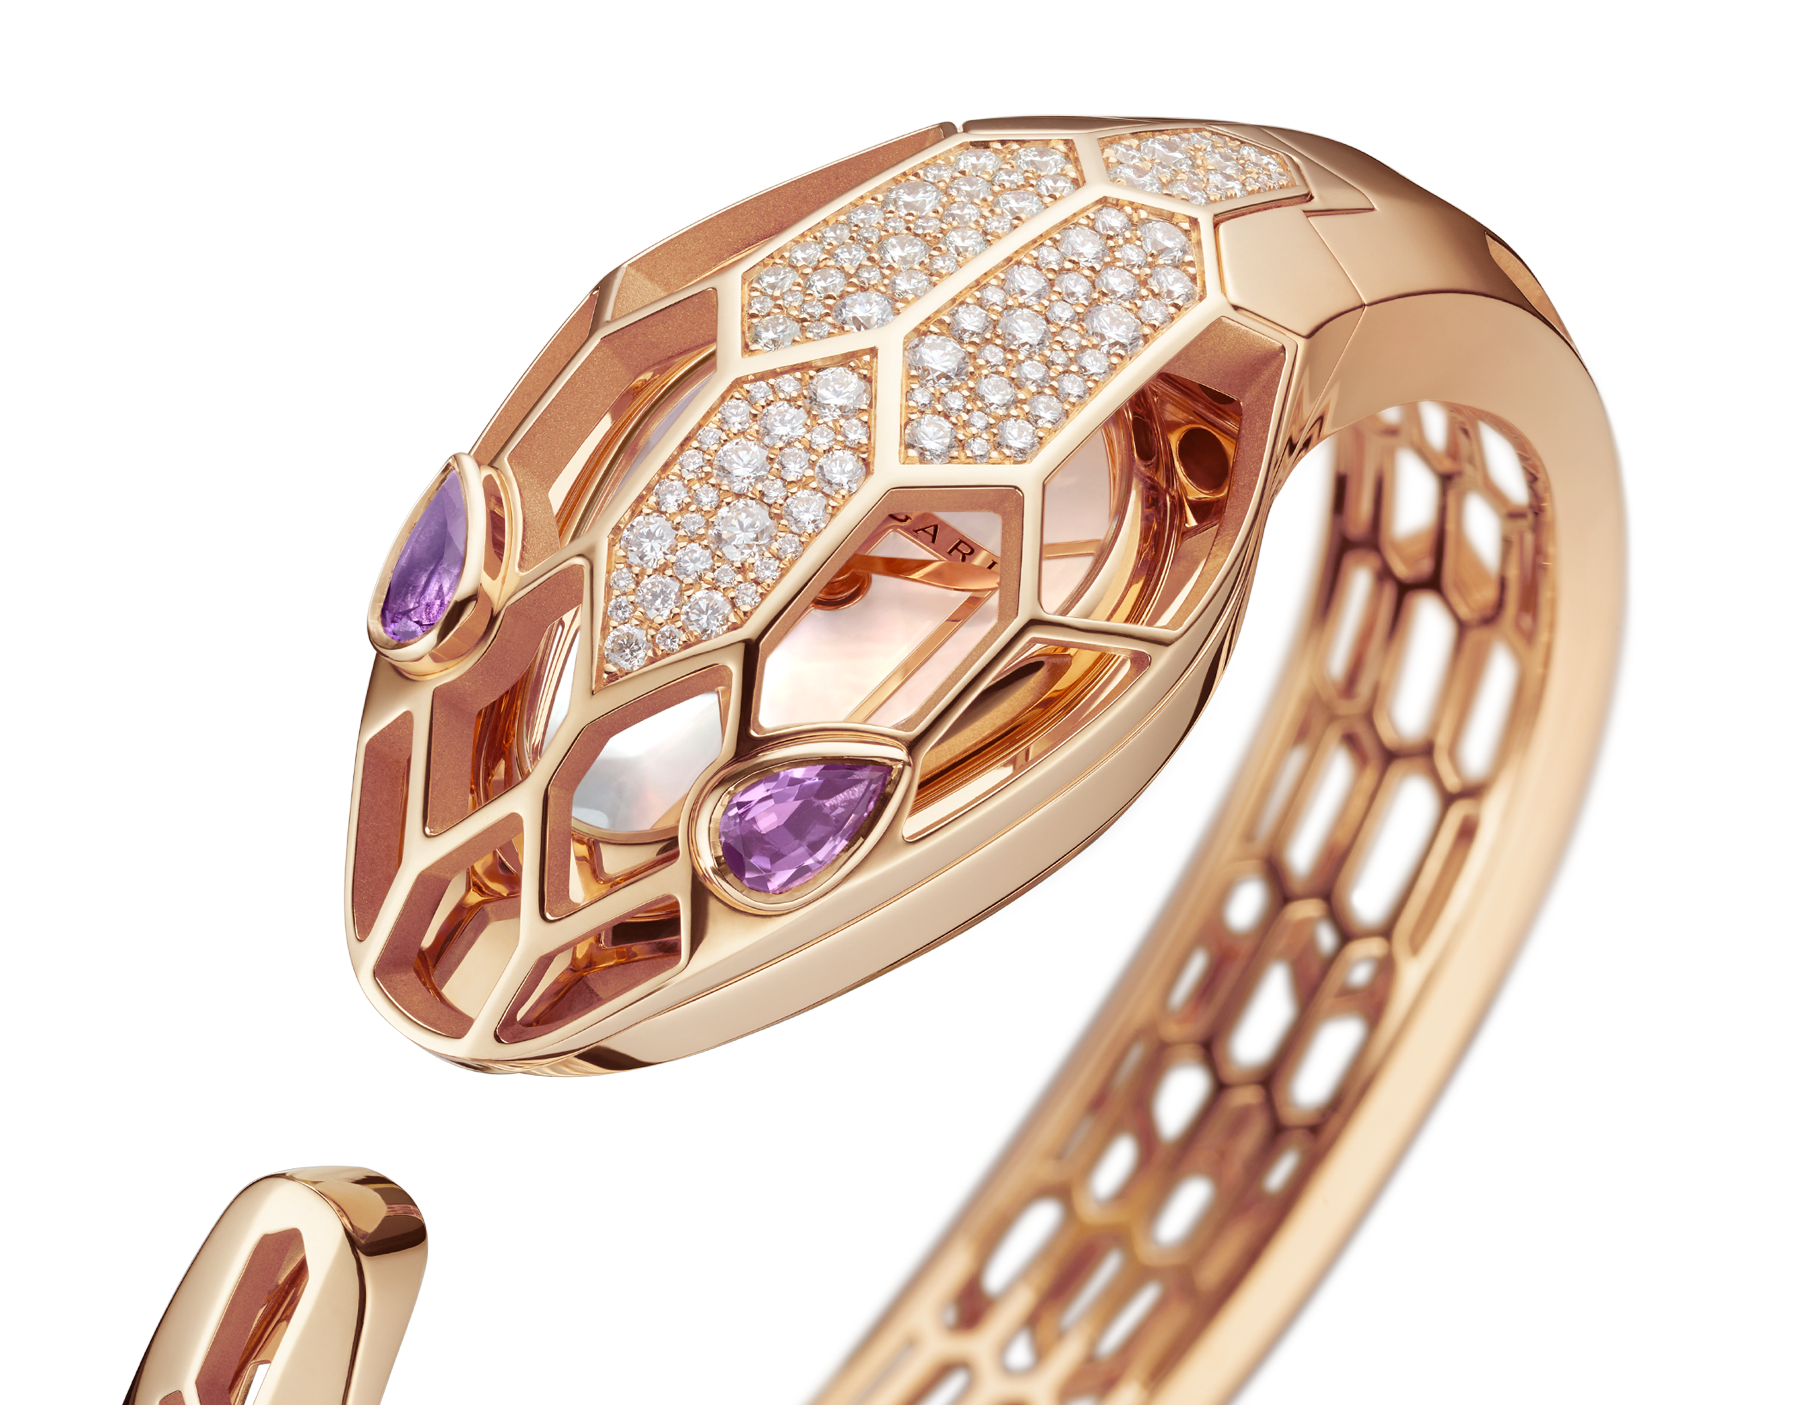 Serpenti Misteriosi Secret Watch with 18 kt rose gold skeletonized case set with round brilliant-cut diamonds, white mother-of-pearl dial, 18 kt rose gold skeletonized bangle bracelet and pear-shaped amethyst eyes. SrpntMister-SecretWtc-rose-gold image 4